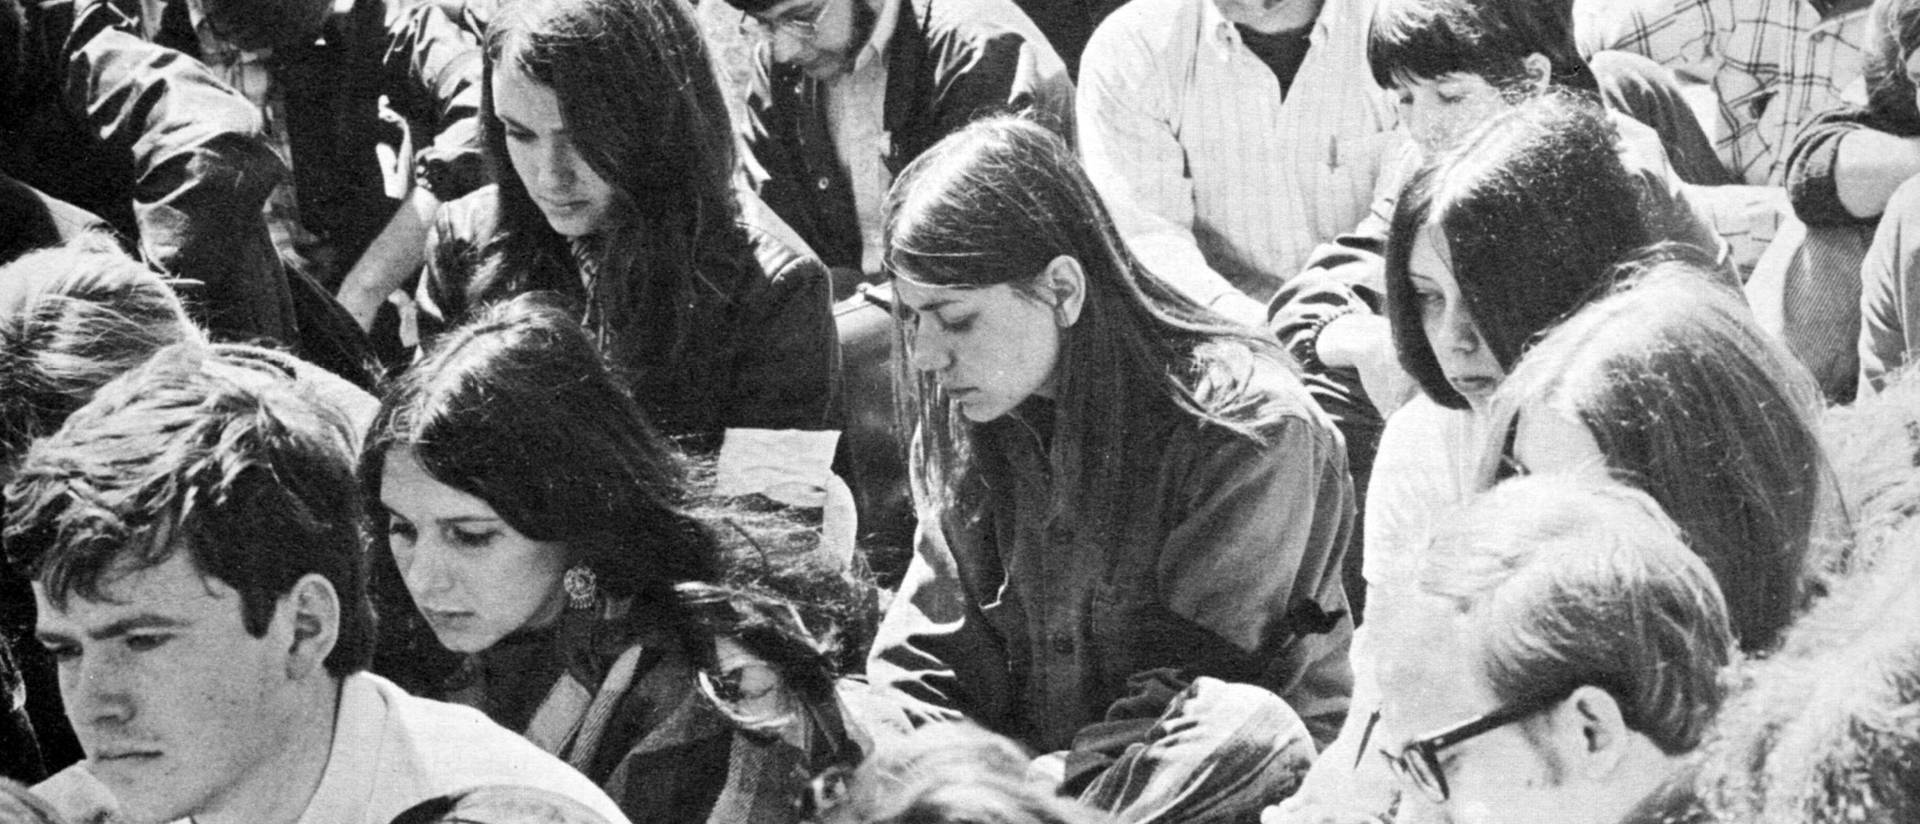 Peaceful peaceful student strike Wisconsin State University-Eau Claire in May1970